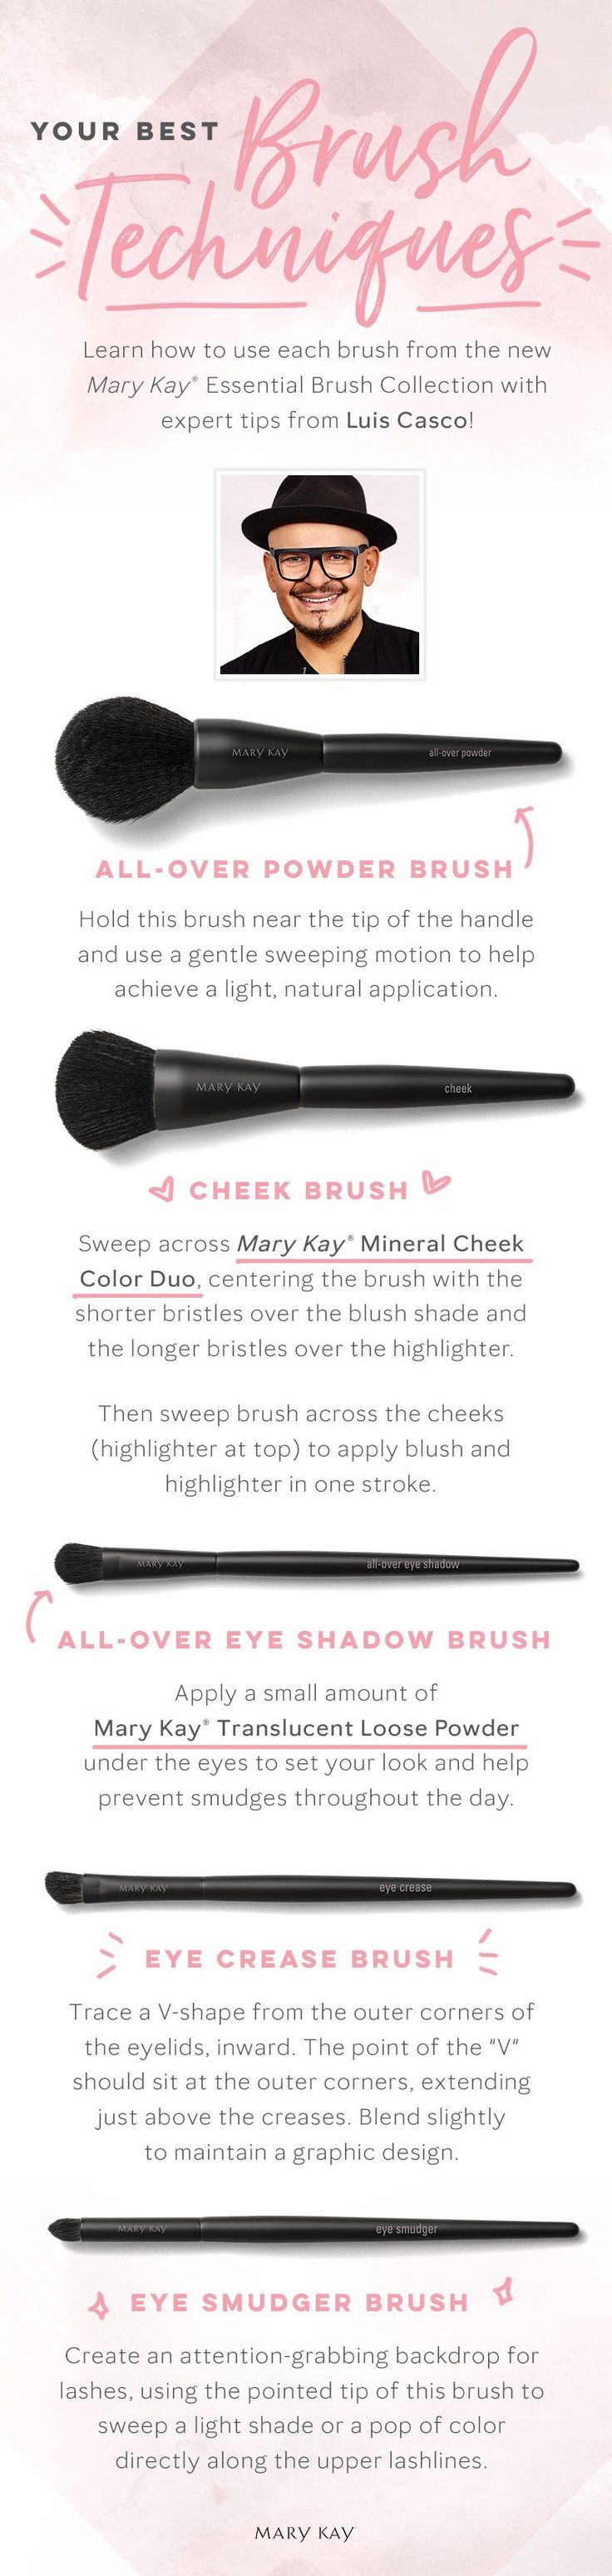 It's time for a beauty brush-up! These expert tips from celebrity makeup artist Luis Casco make foundation, eye and cheek application easy and seamless. | Mary Kay #makeuptips